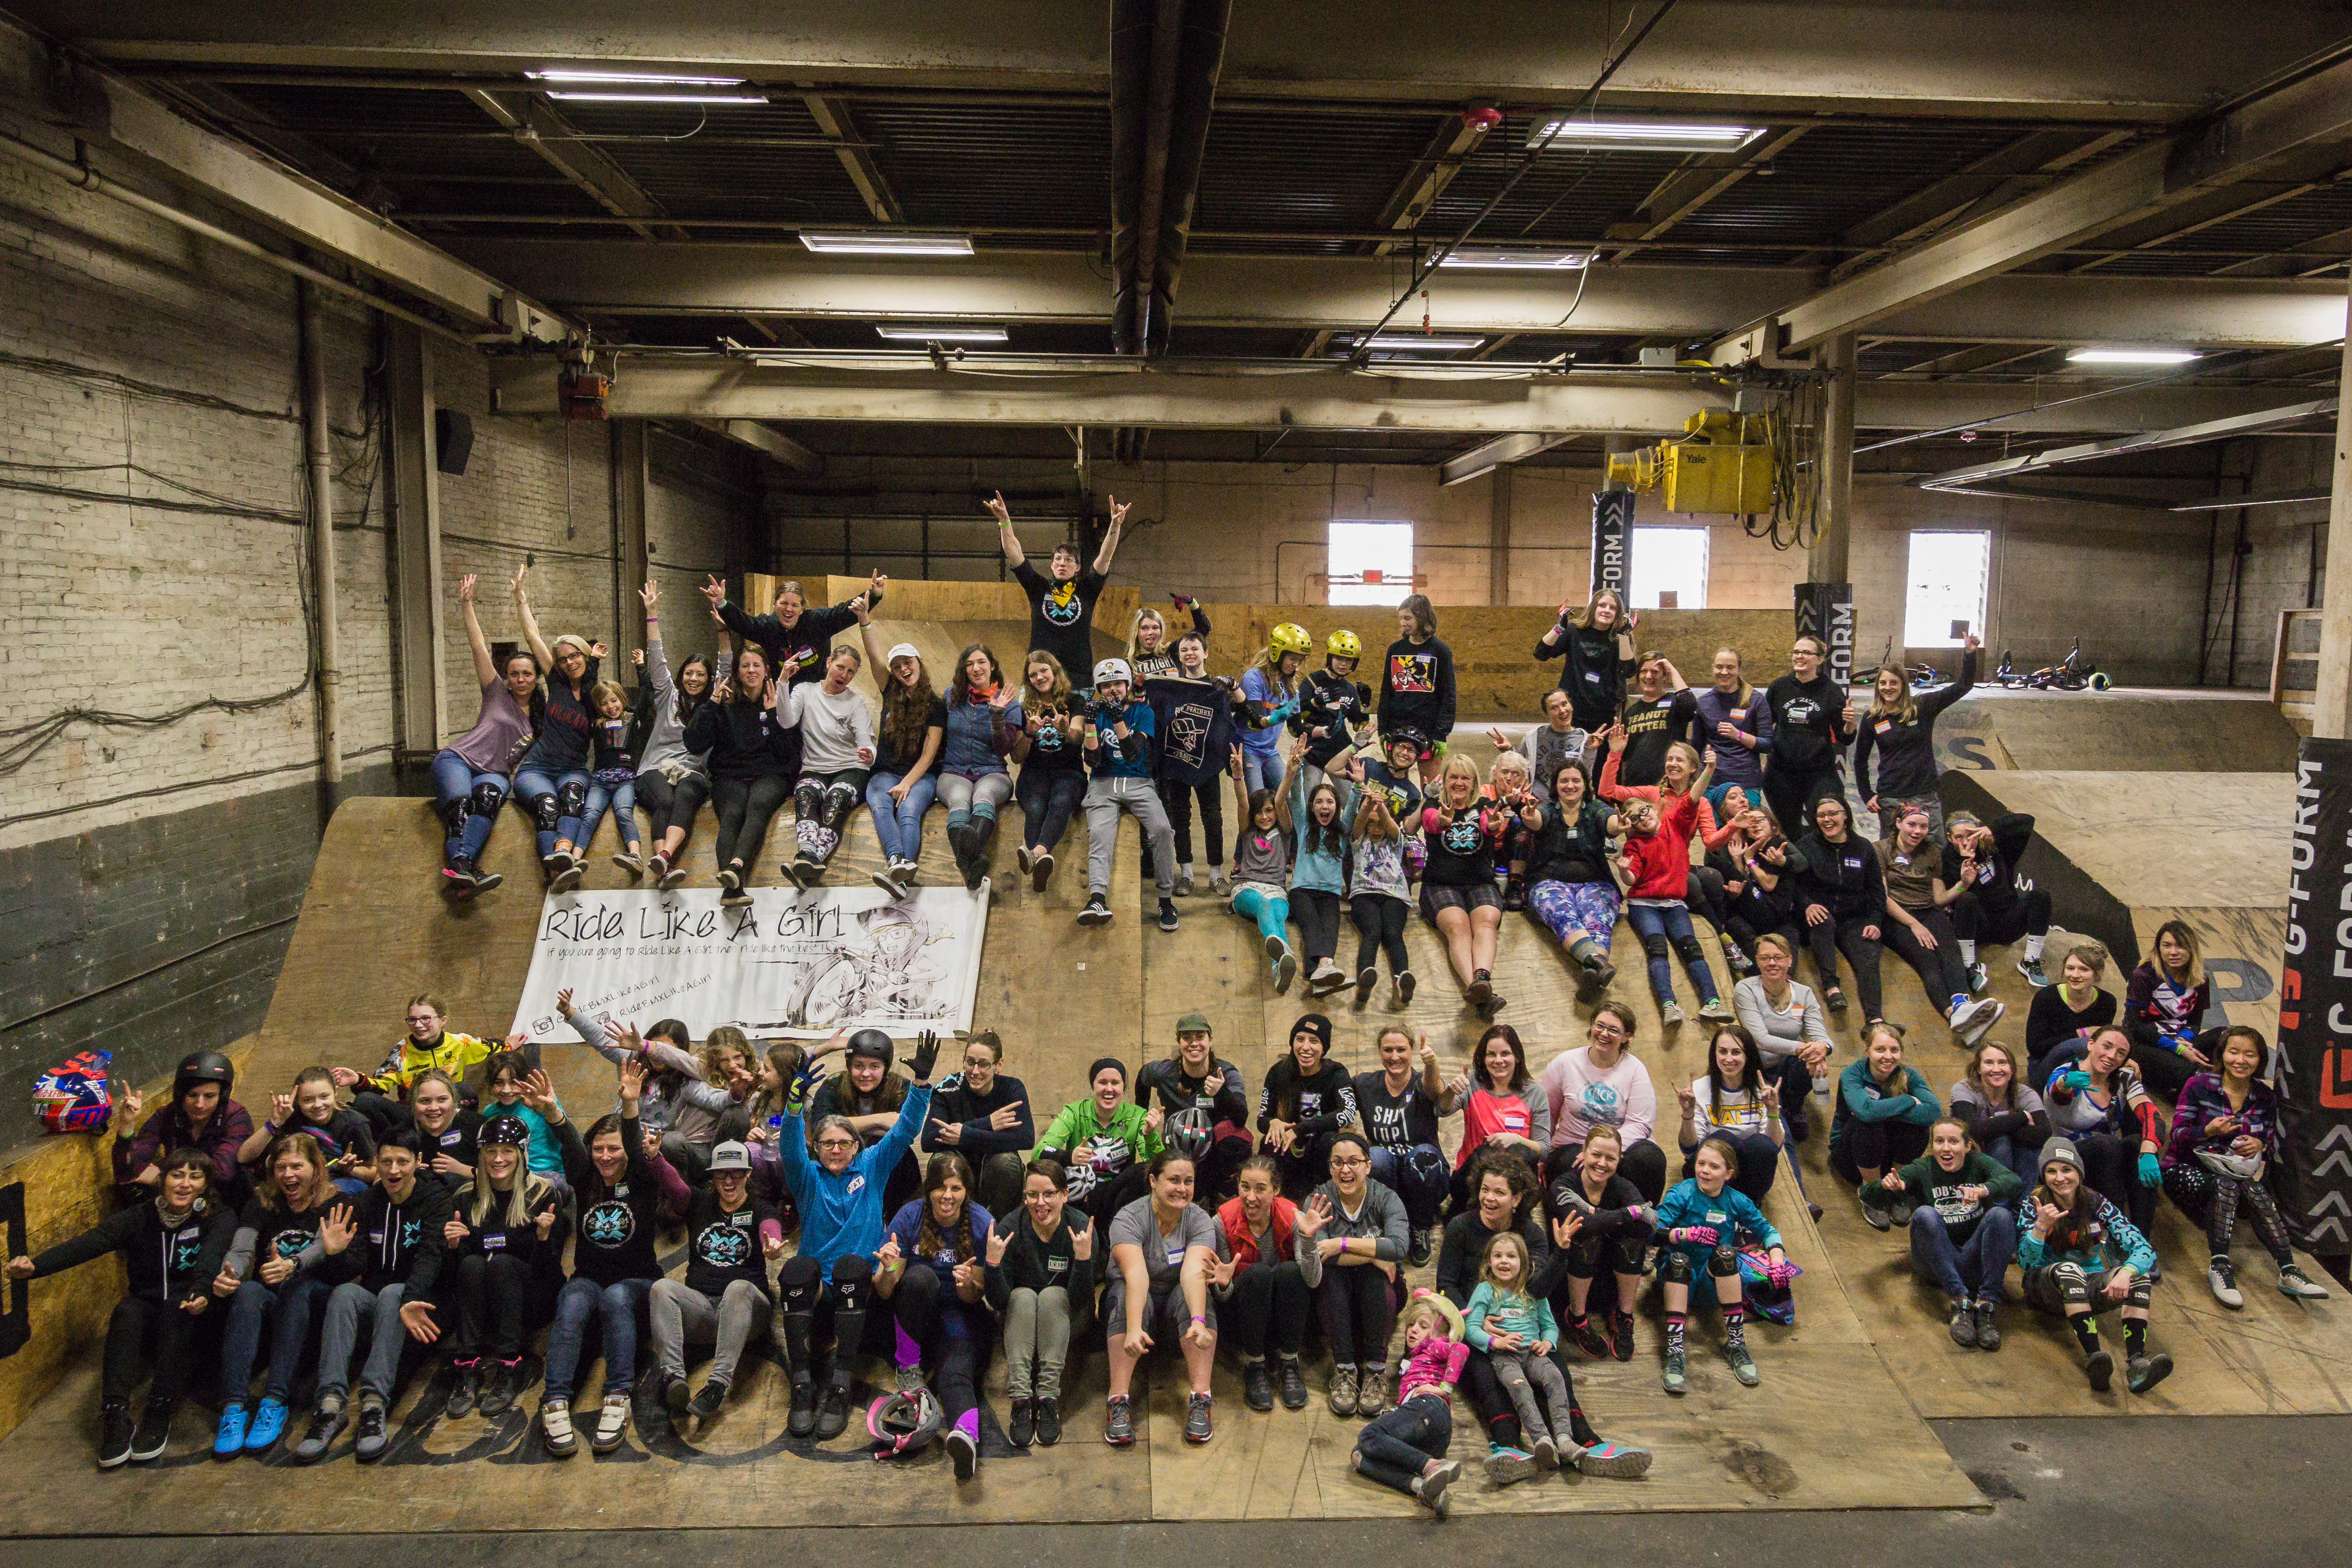 9e020d2fc62 On January 13, 2018 The Wheel Mill was packed with 73 female cyclists and  six coaches. We came together for the Ride Like A Girl Weekend with a  common goal ...